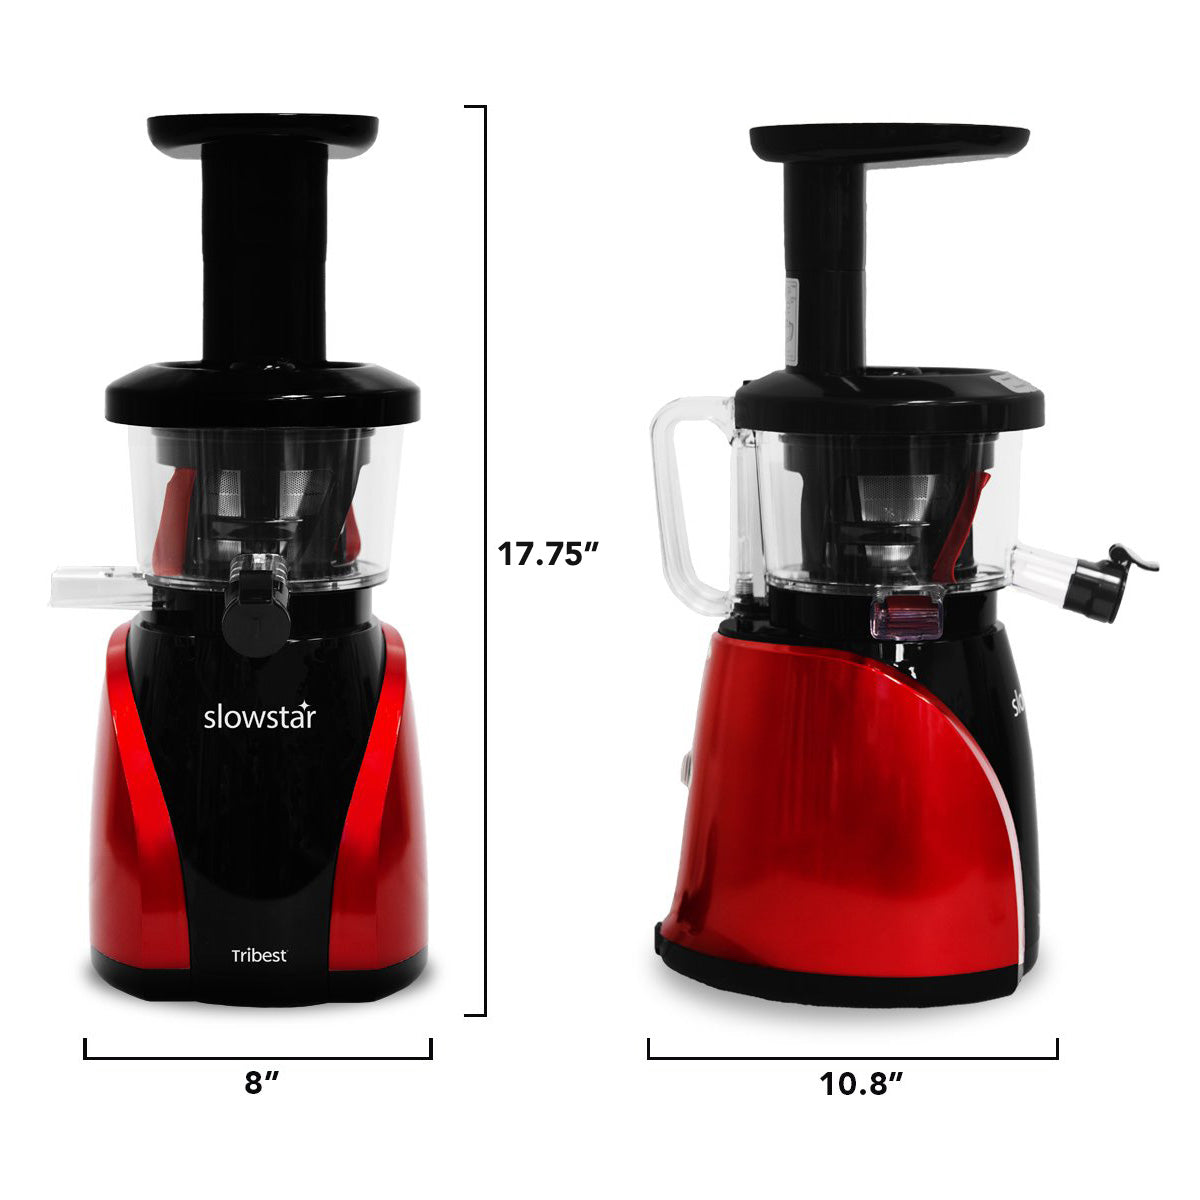 "Slowstar Vertical Slow Juicer & Mincer in Red SW-2000-B - Size 8"" W x 10.8"" D x 17.75"" H - Tribest"